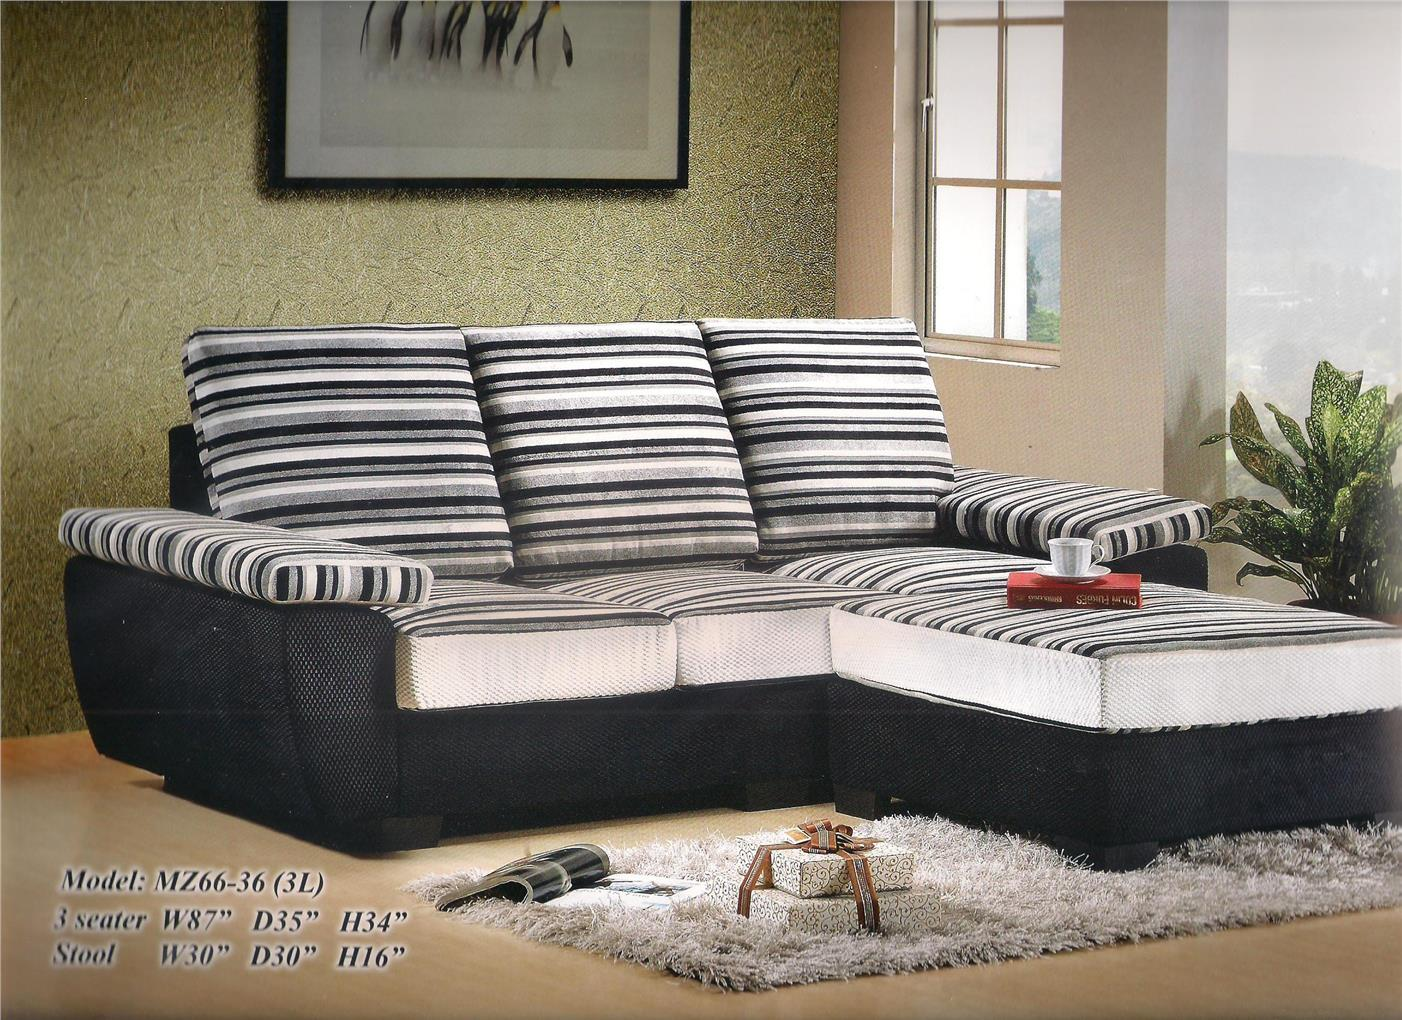 NiceHome low price 3L-shape sofa set Promo model - MZ66-36